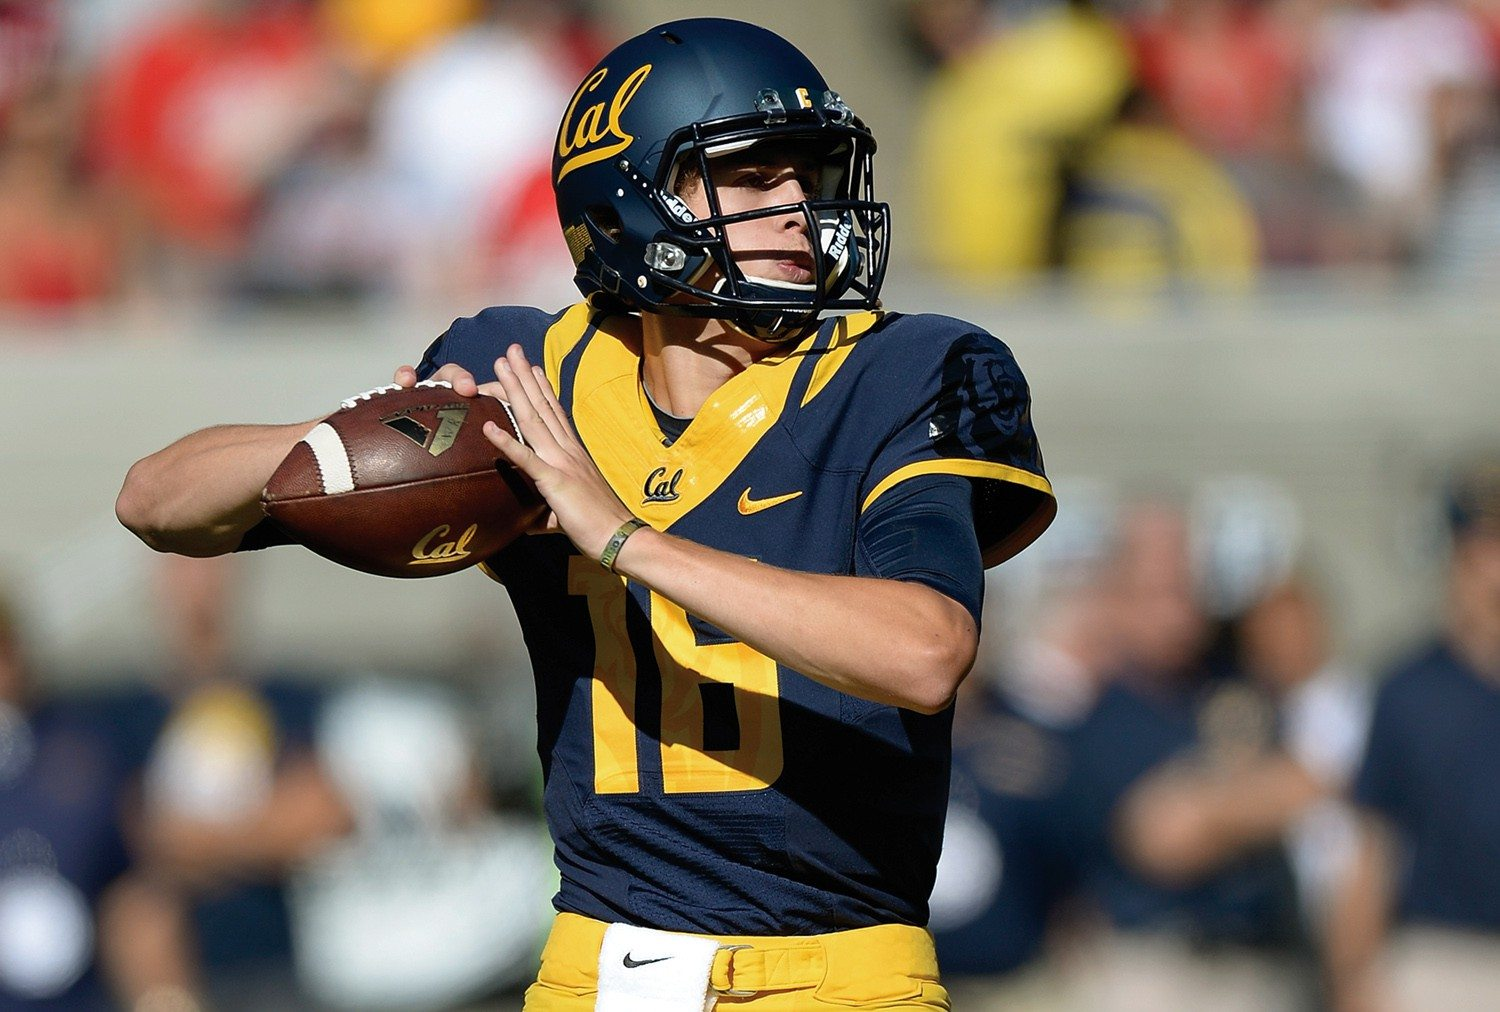 """Thearon W. Henderson/Getty Images file photoCal freshman quarterback Jared Goff has no reservations facing off with Oregon's Marcus Mariota on Saturday. """"Just a regular game"""